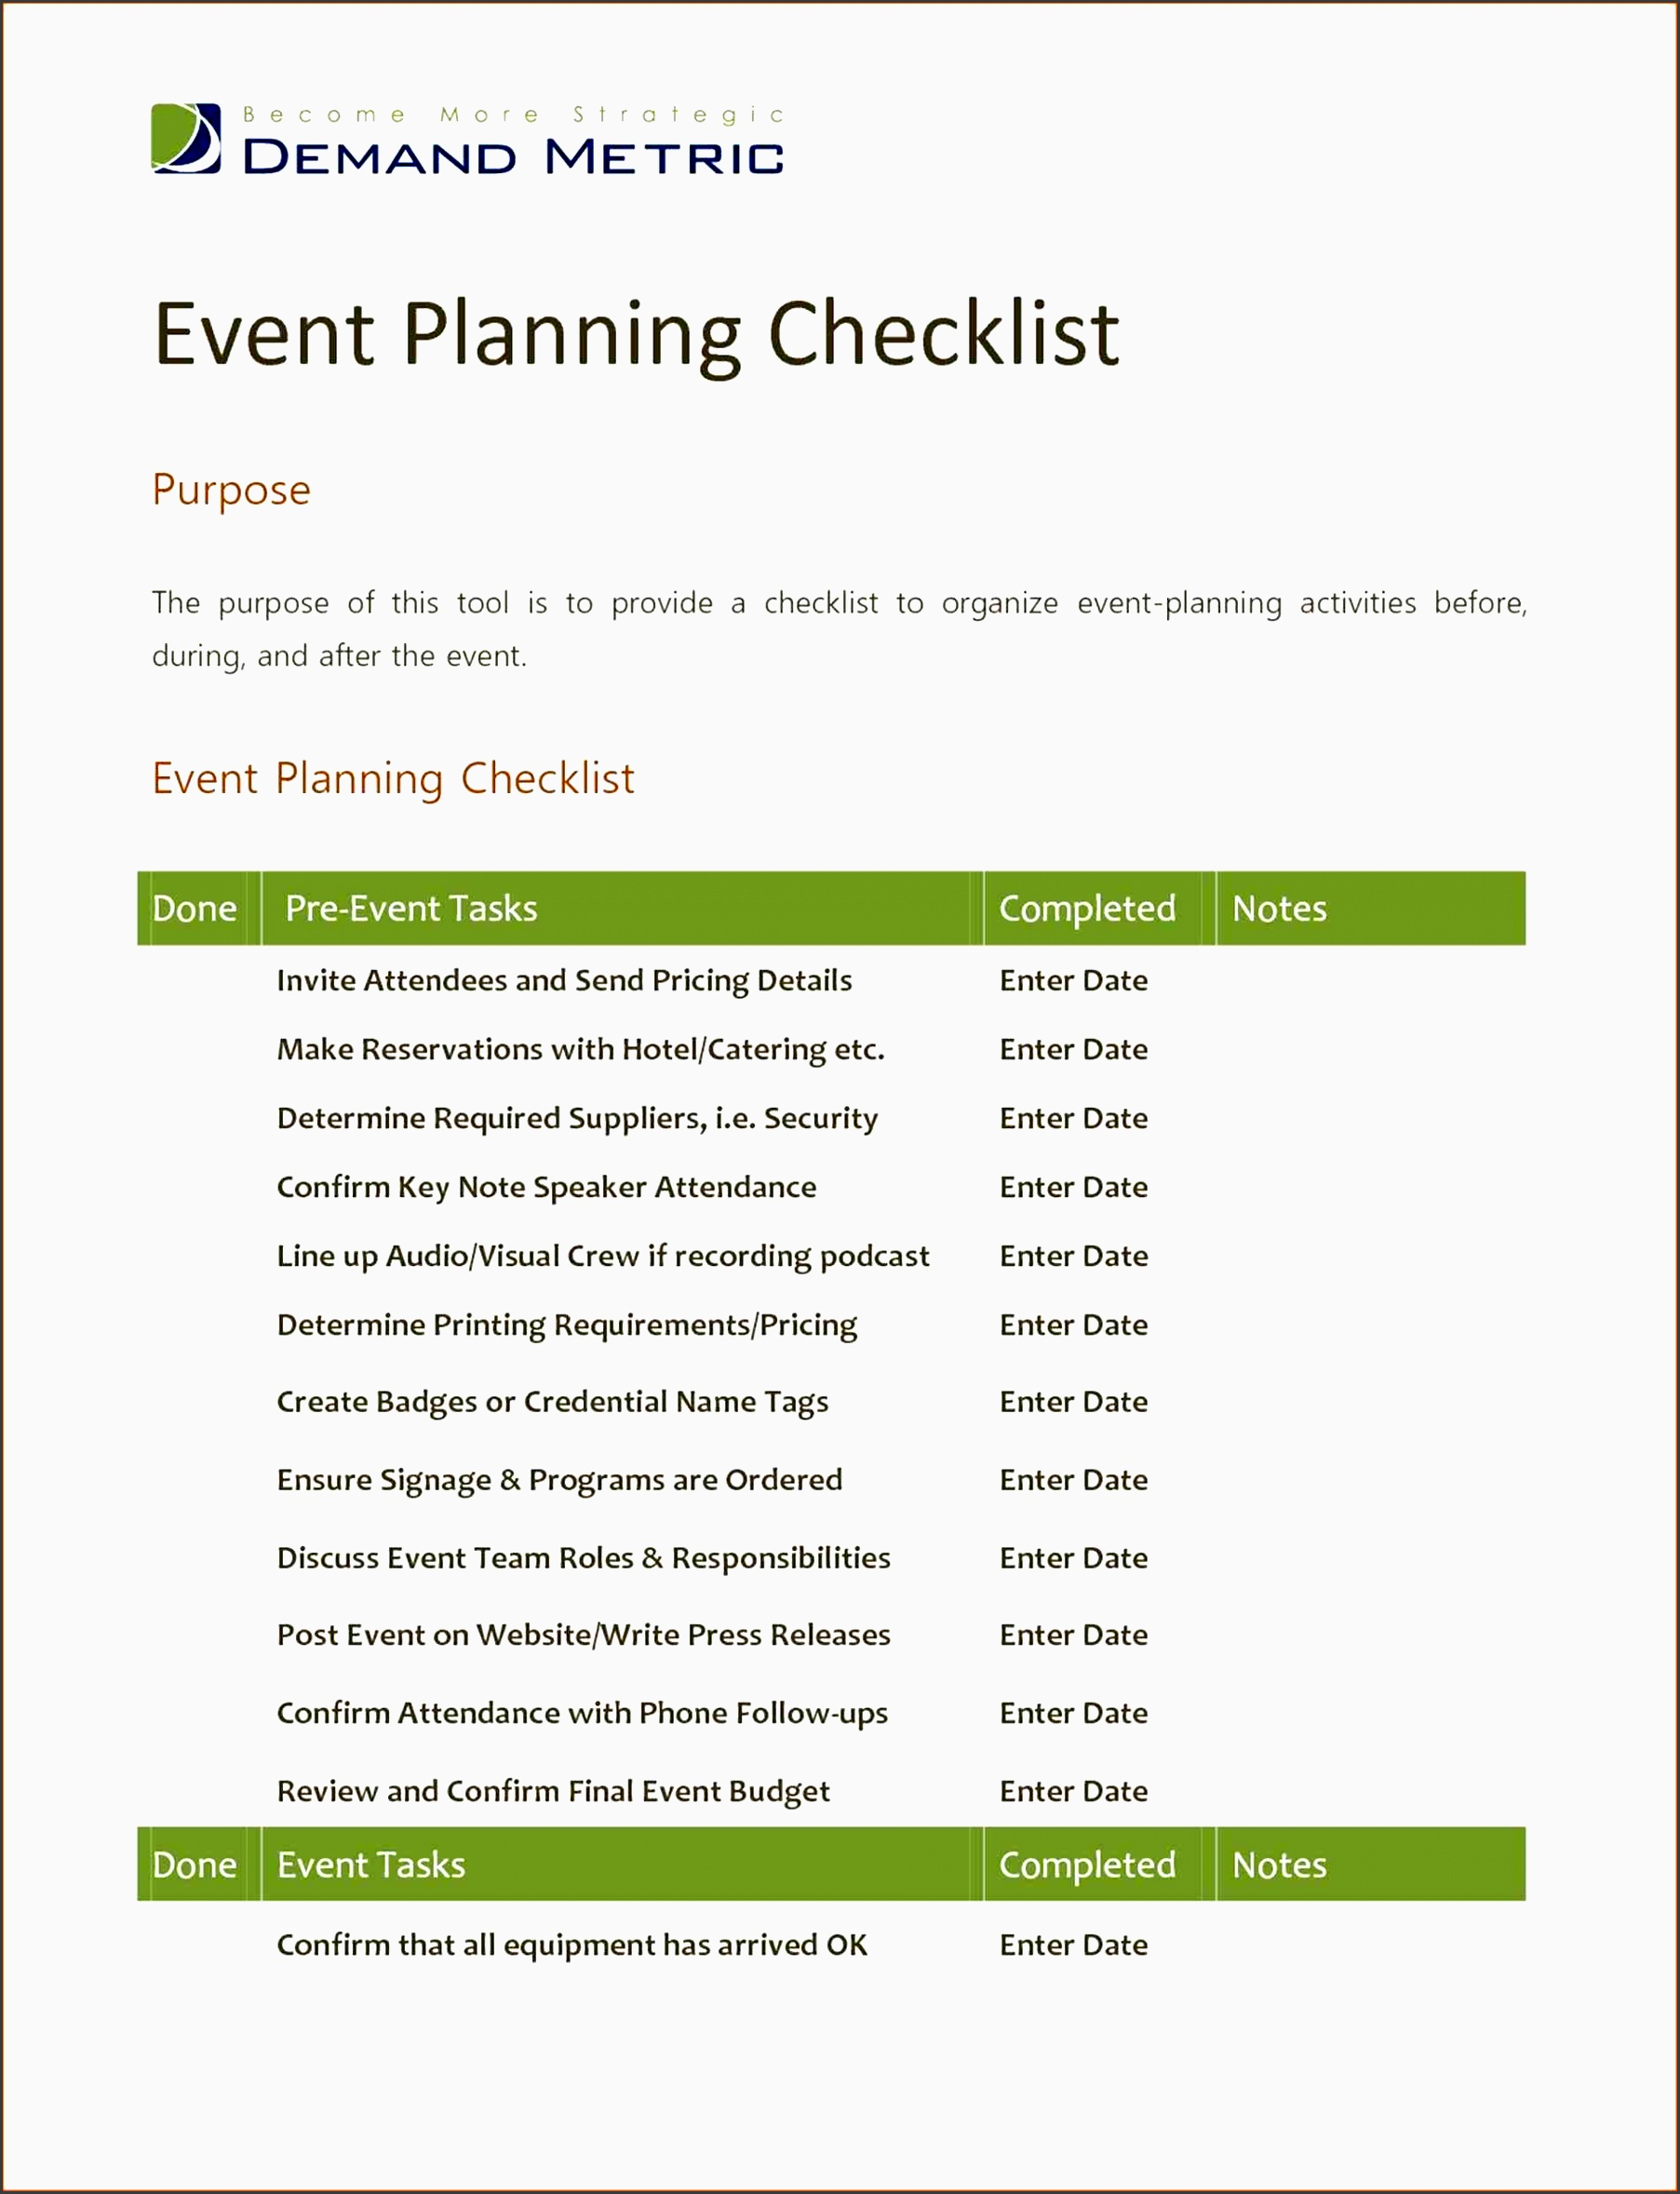 7 church event planning checklist template sampletemplatess sampletemplatess. Black Bedroom Furniture Sets. Home Design Ideas